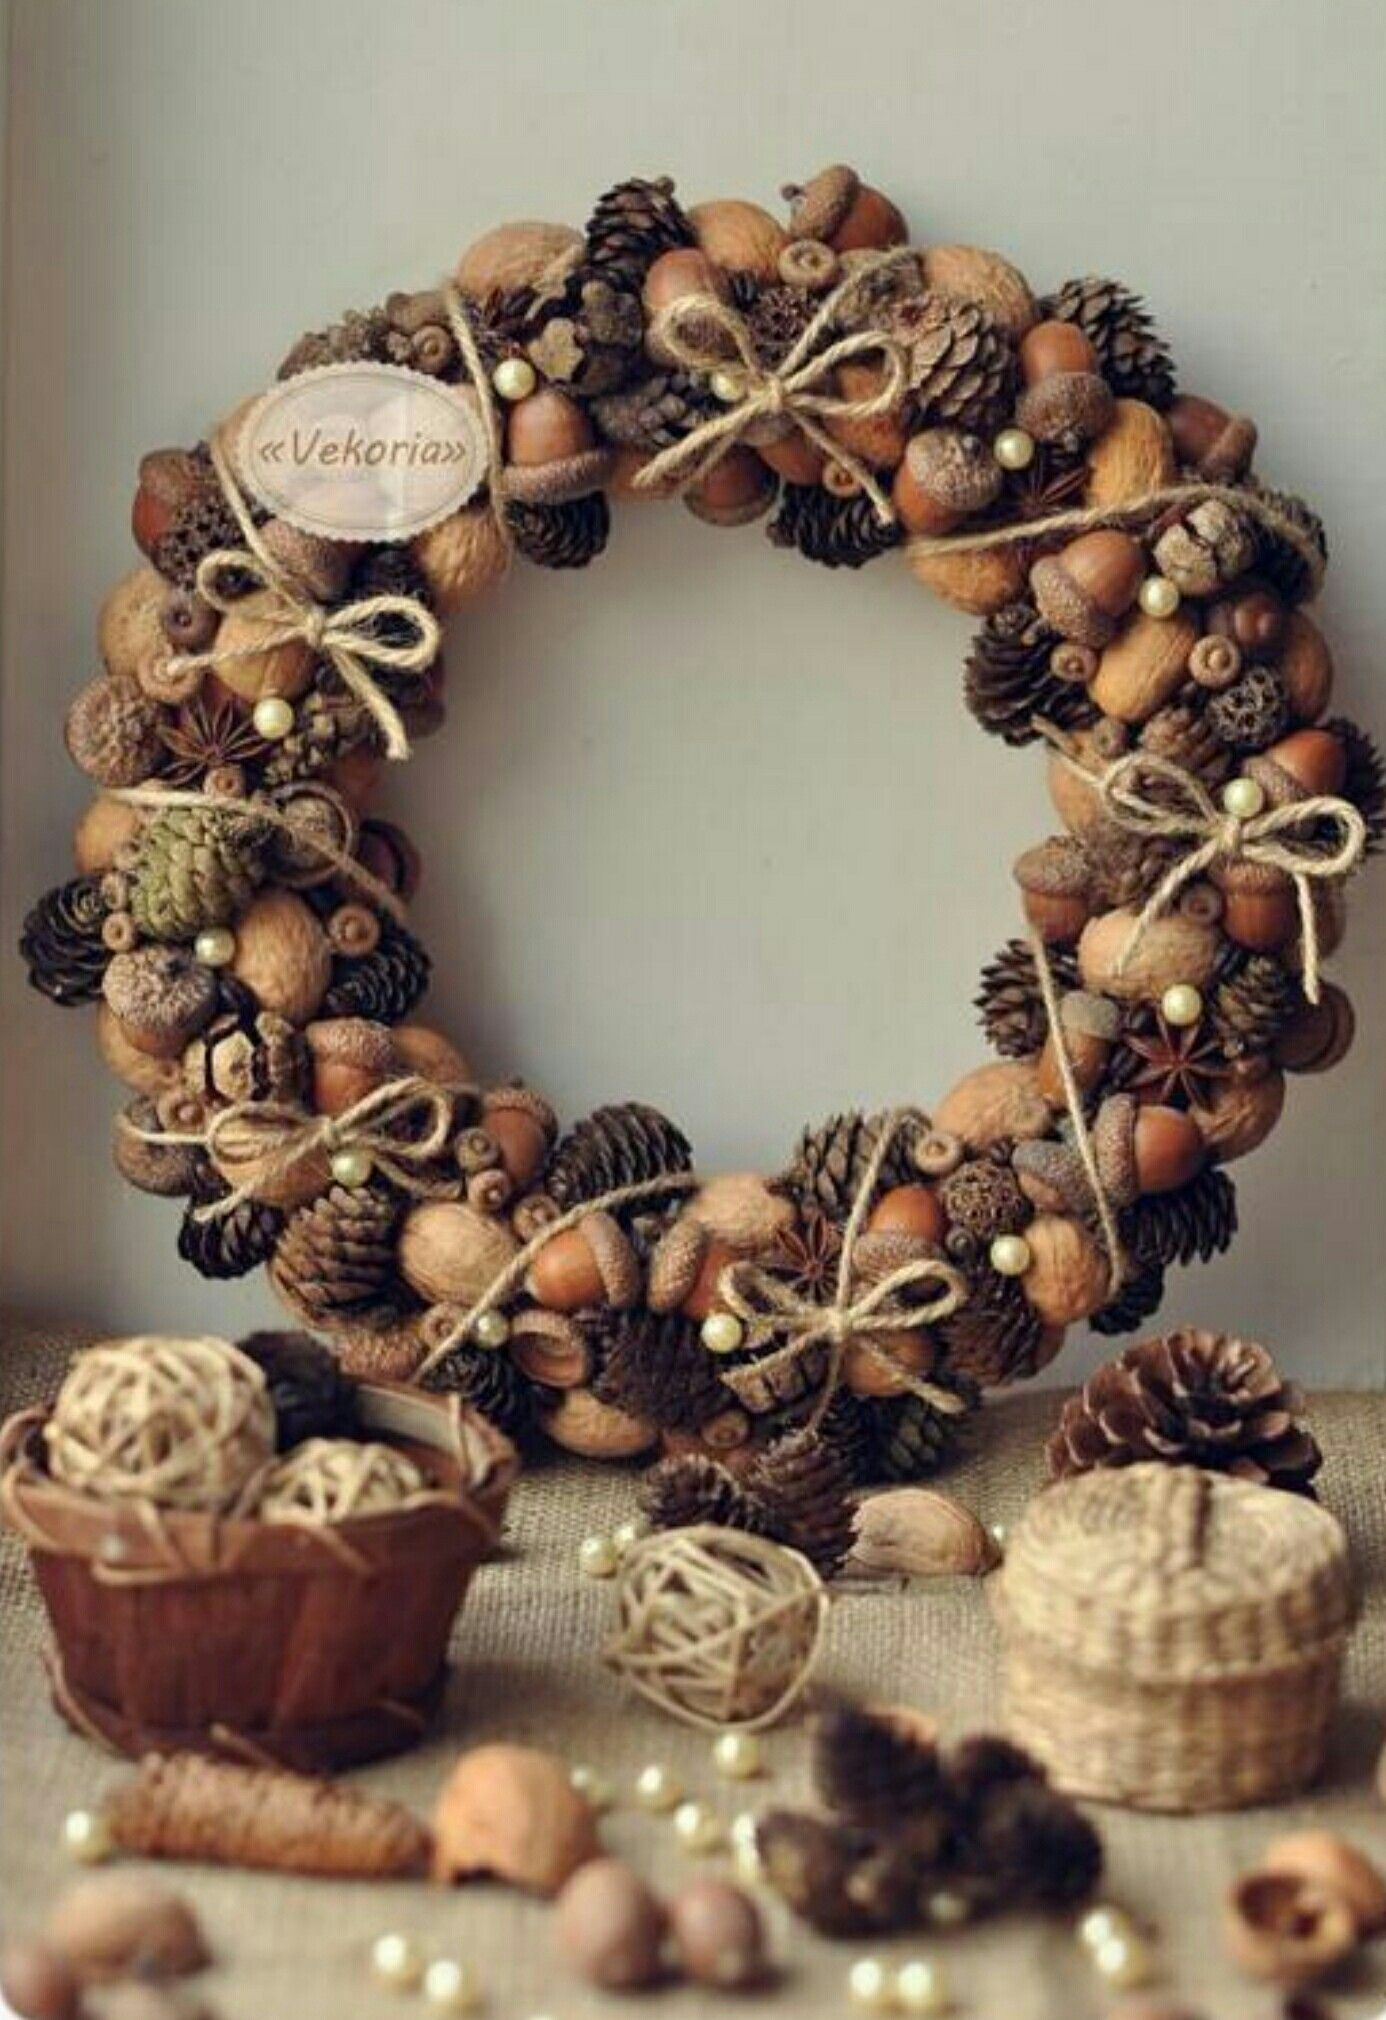 I have to make one I love all the texture this nature wreath creates with the acorn and pine cones so pretty